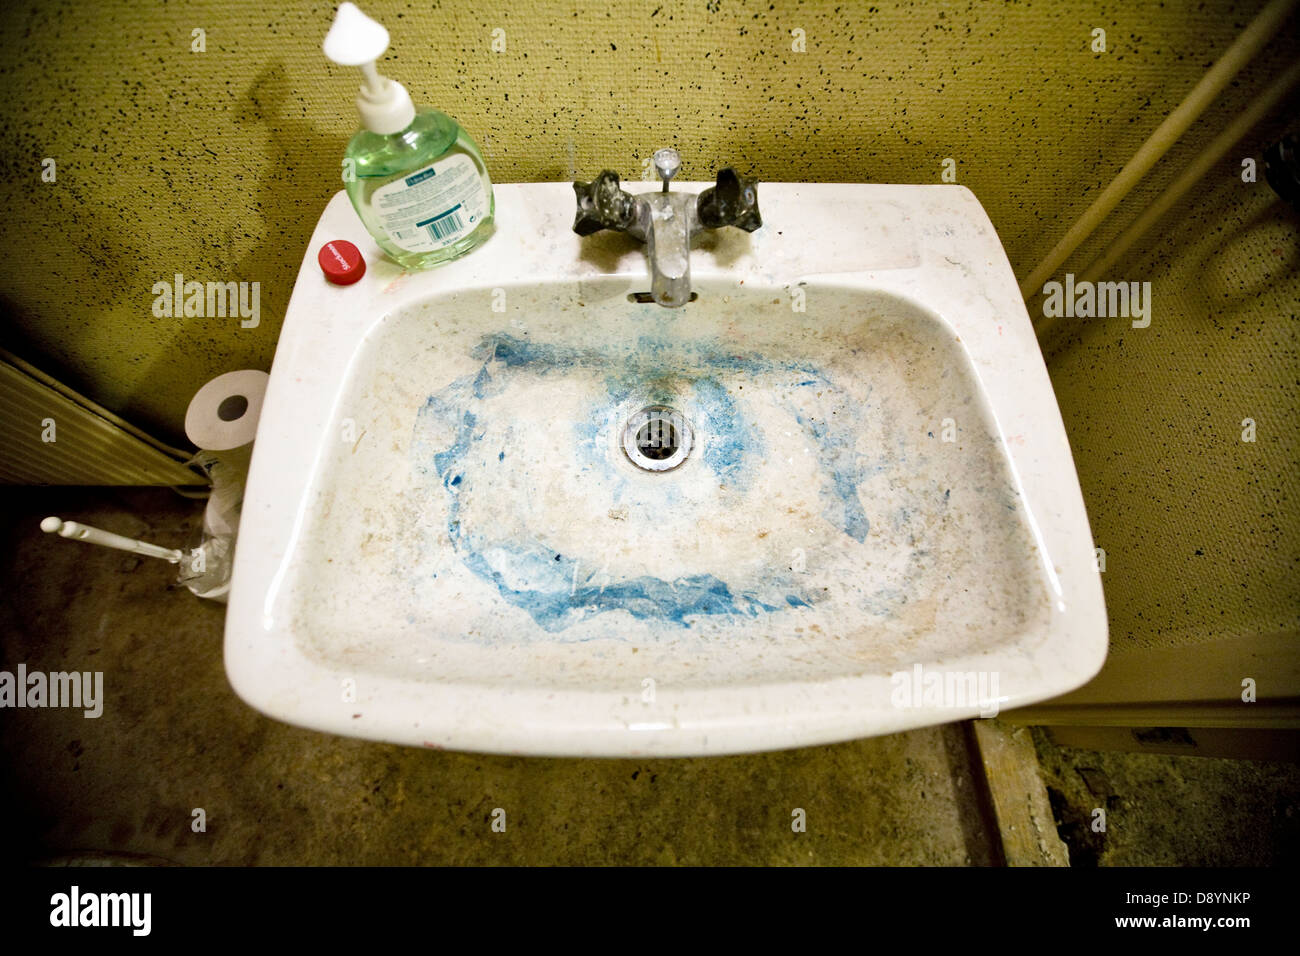 Dirty bathroom sink stock photo royalty free image for Dirty bathroom photos